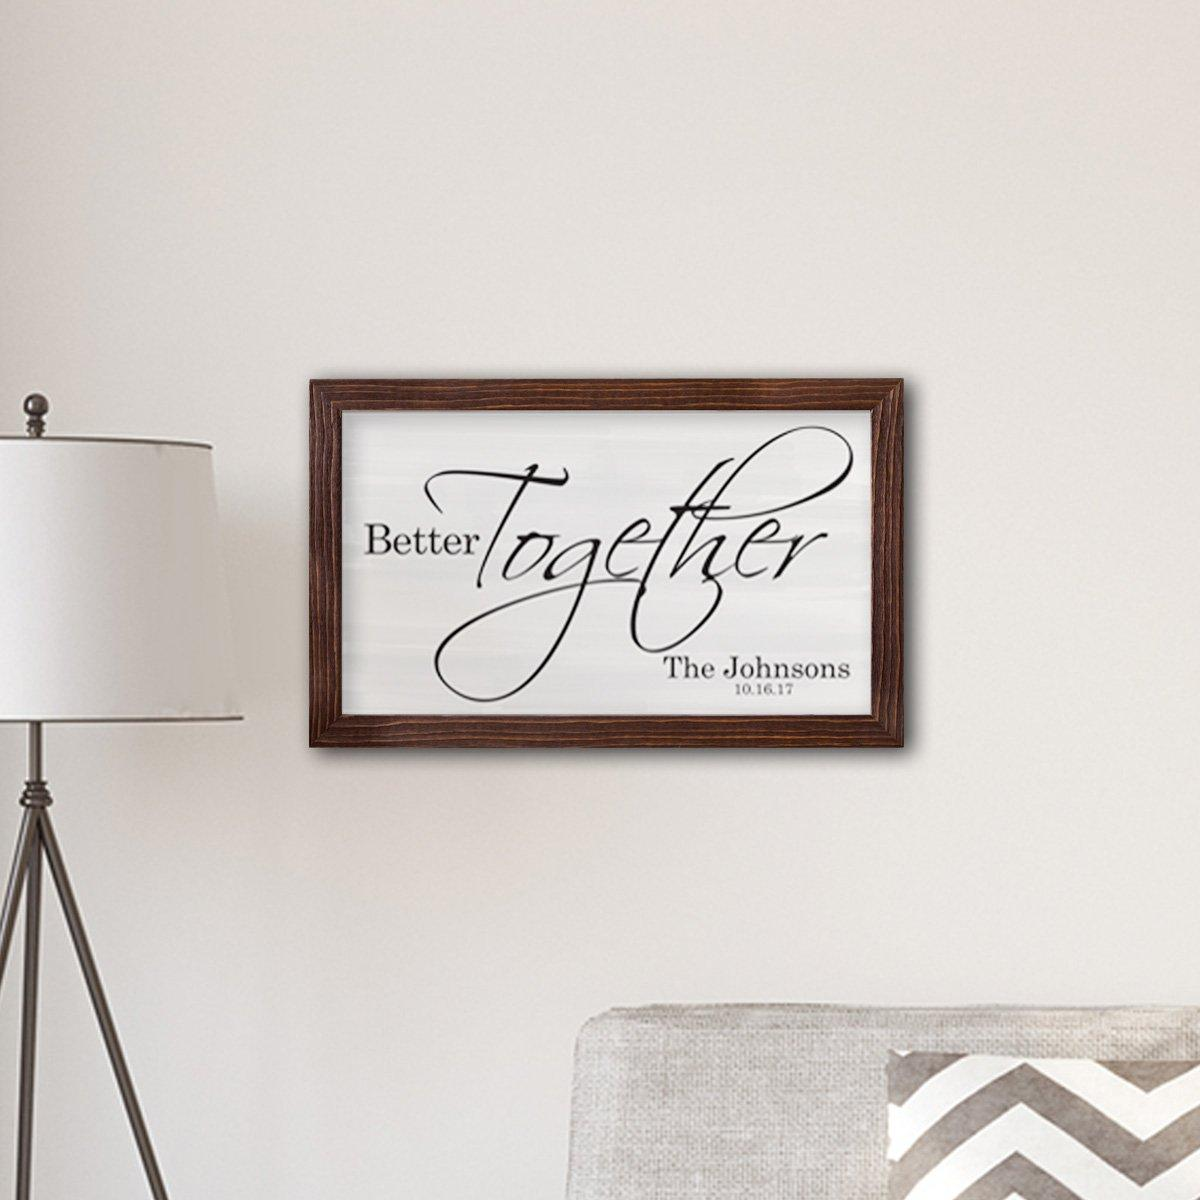 Personalized Framed Better Together Farmhouse Print - 14